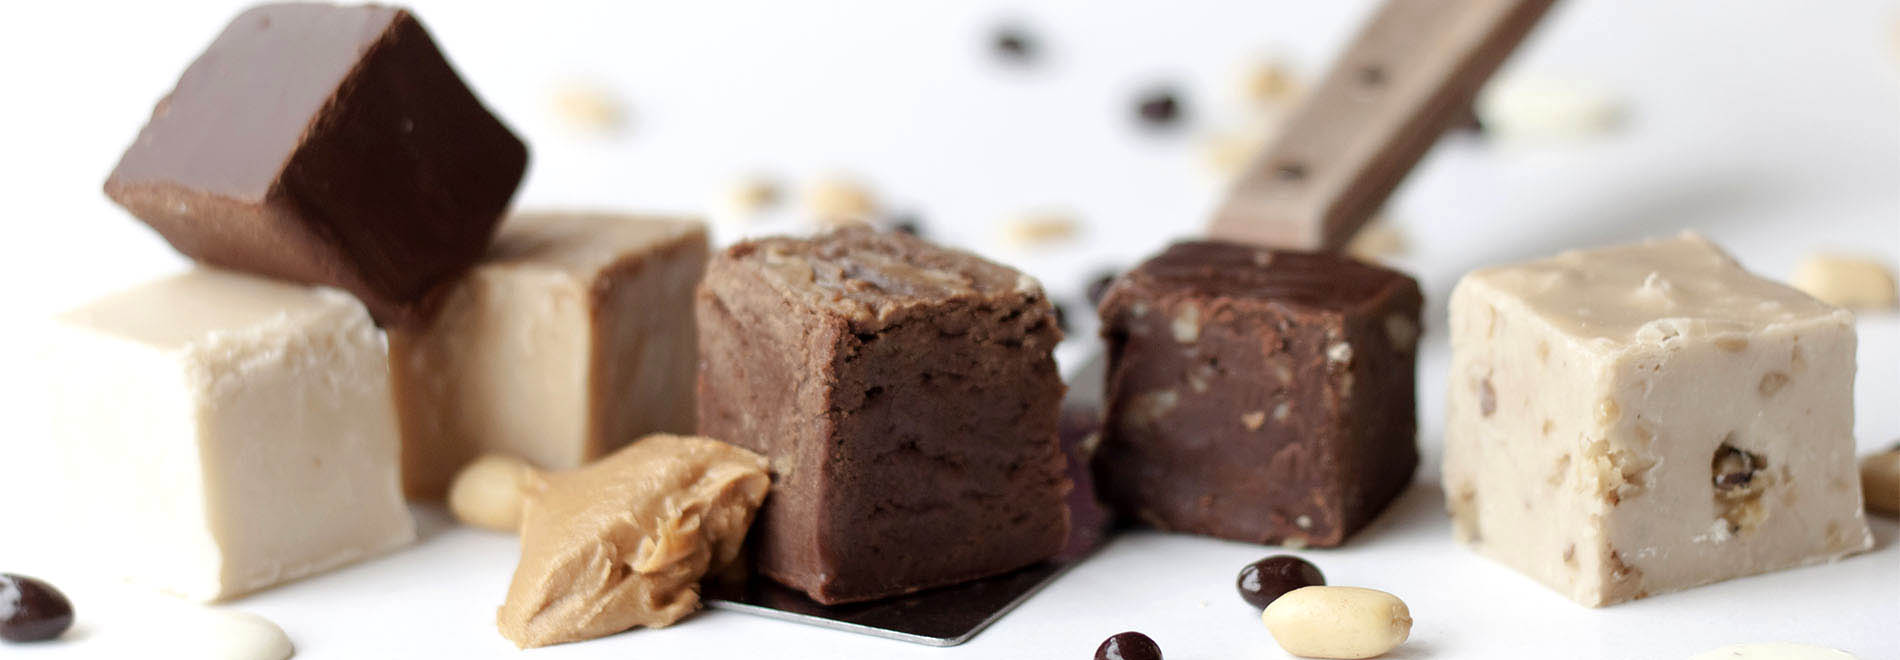 Thick, Rich Fudge Squares in Delicious Flavors